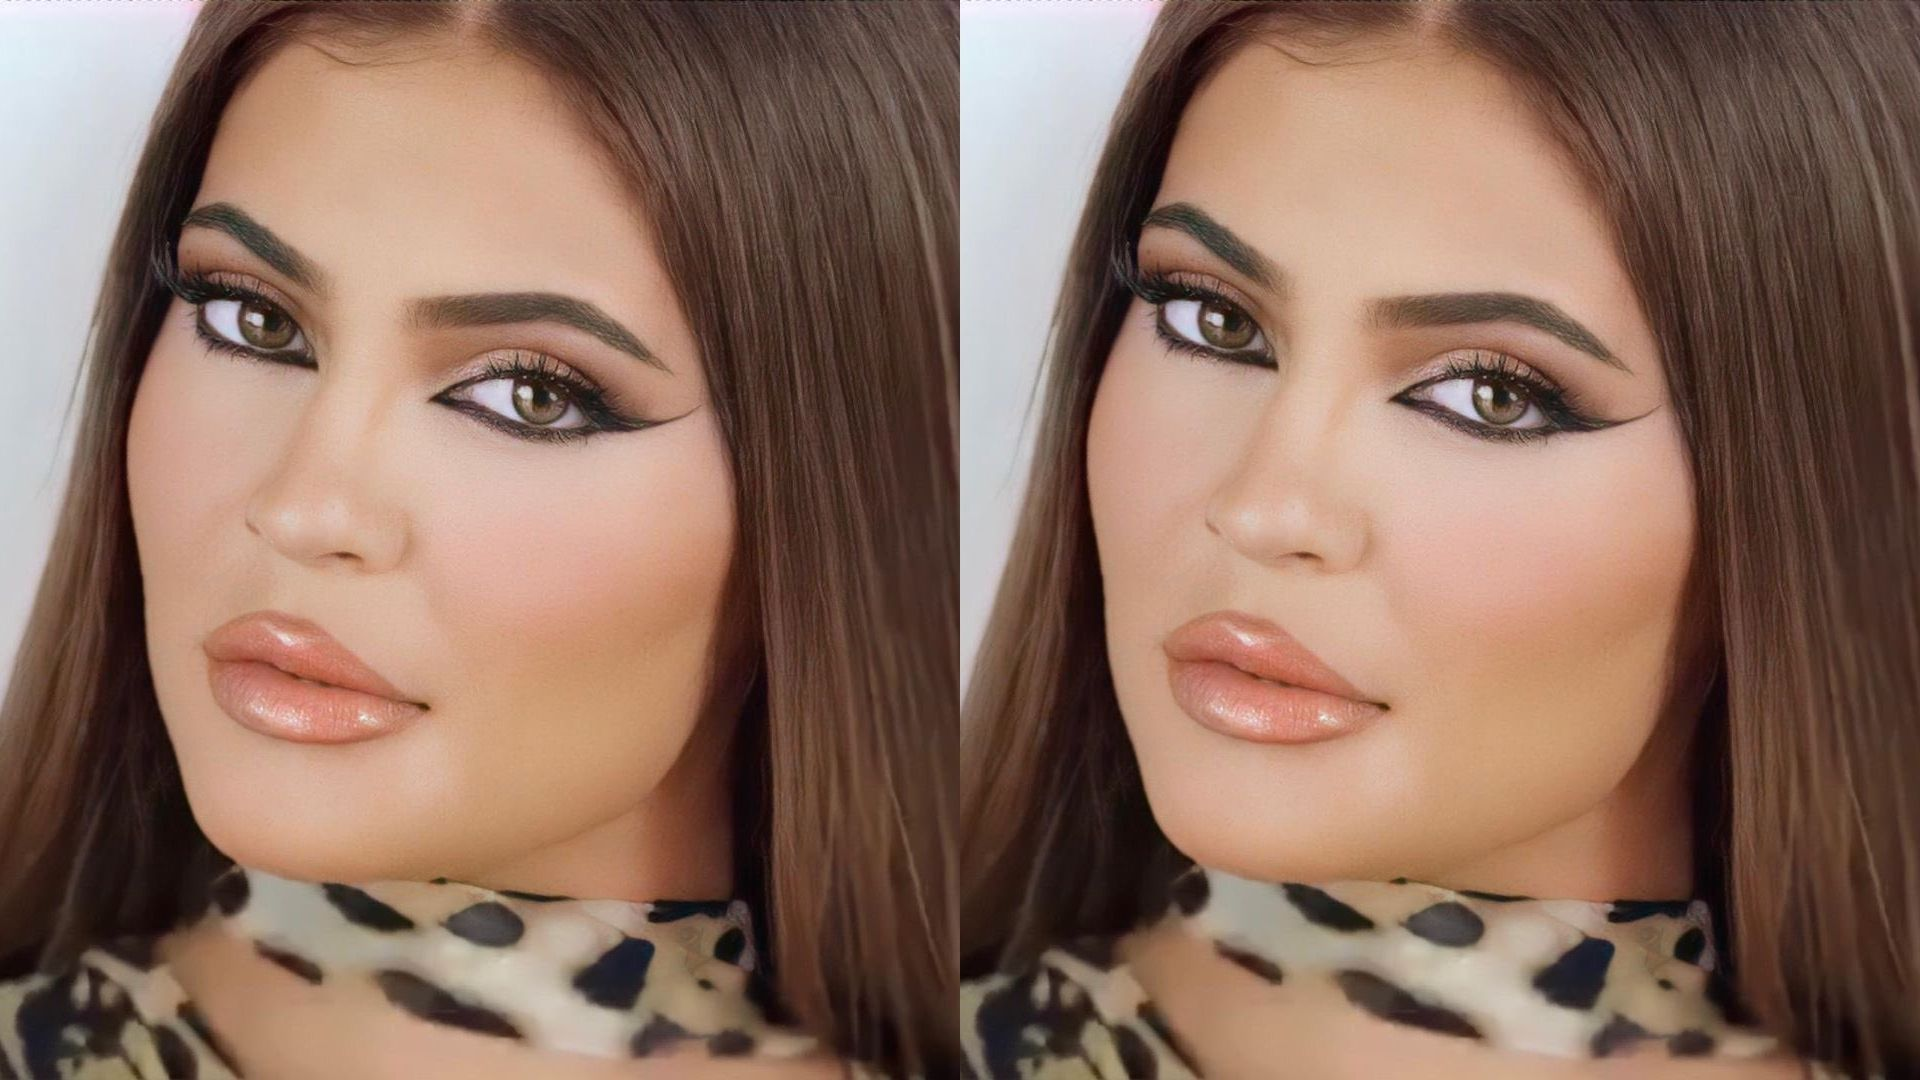 The Internet has now crowned Kylie Jenner the ultimate 'Arab ...